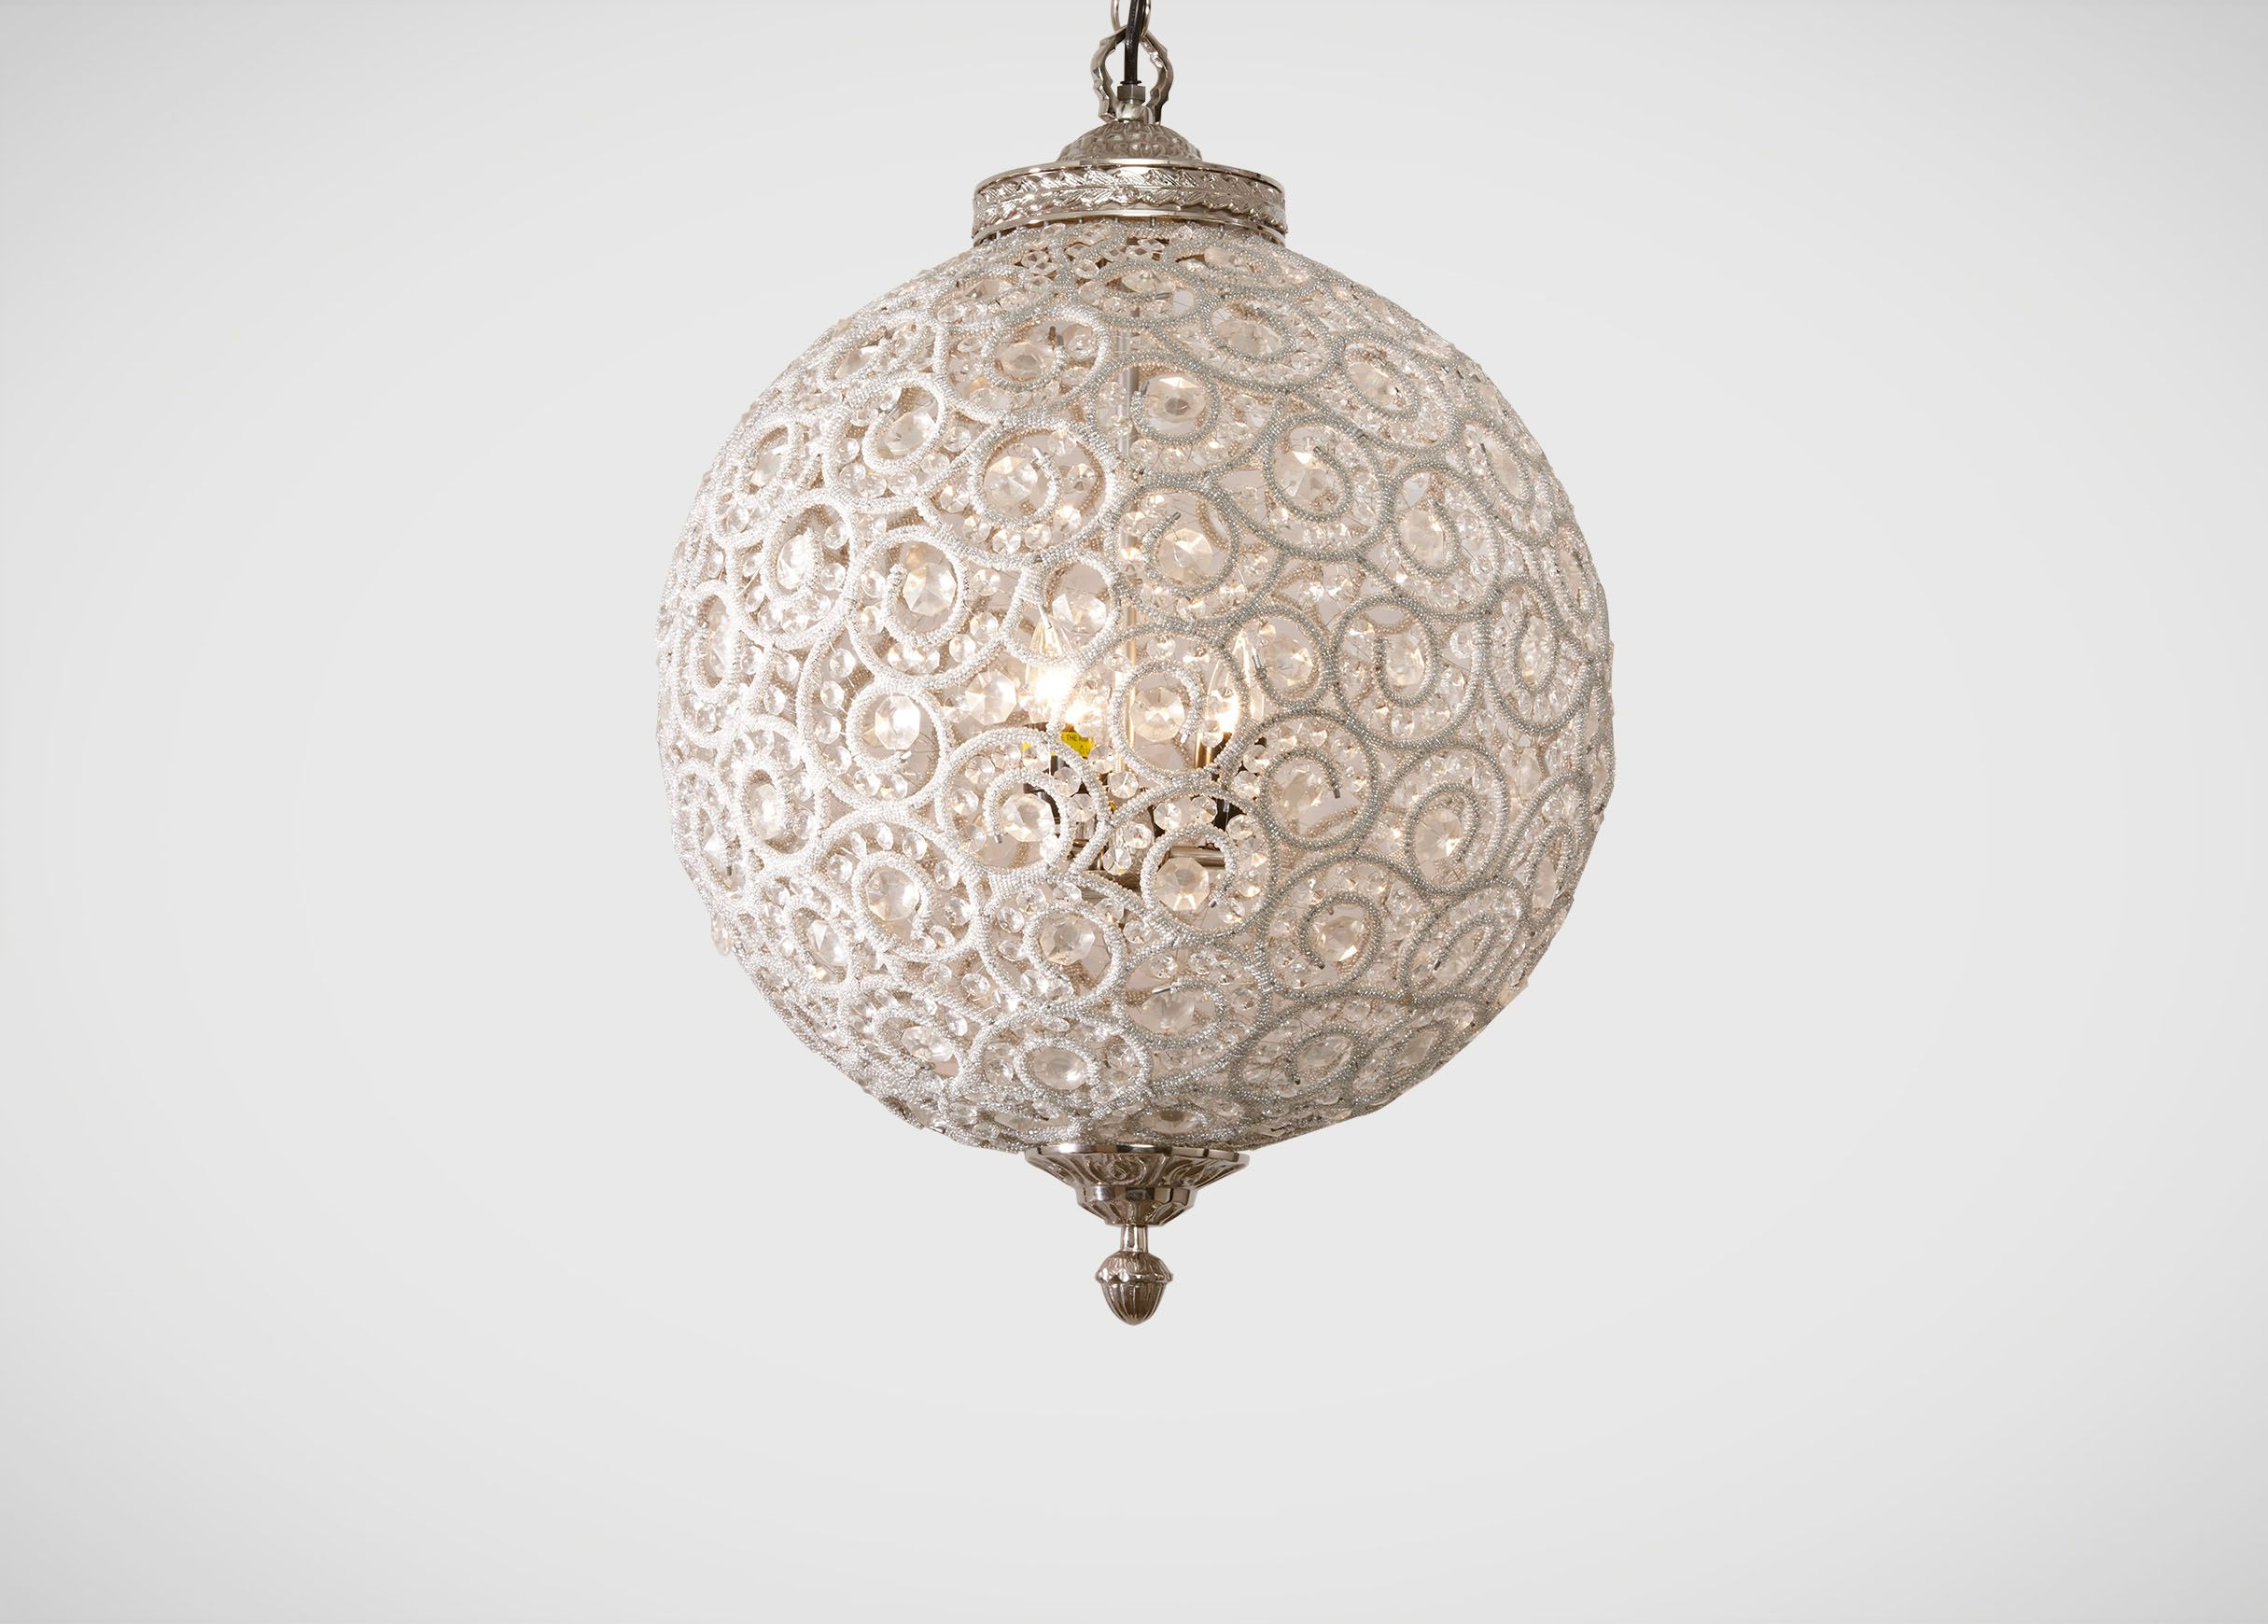 Flowered ball chandelier ethan allen 509 lighting pinterest flowered ball chandelier ethan allen 509 arubaitofo Gallery